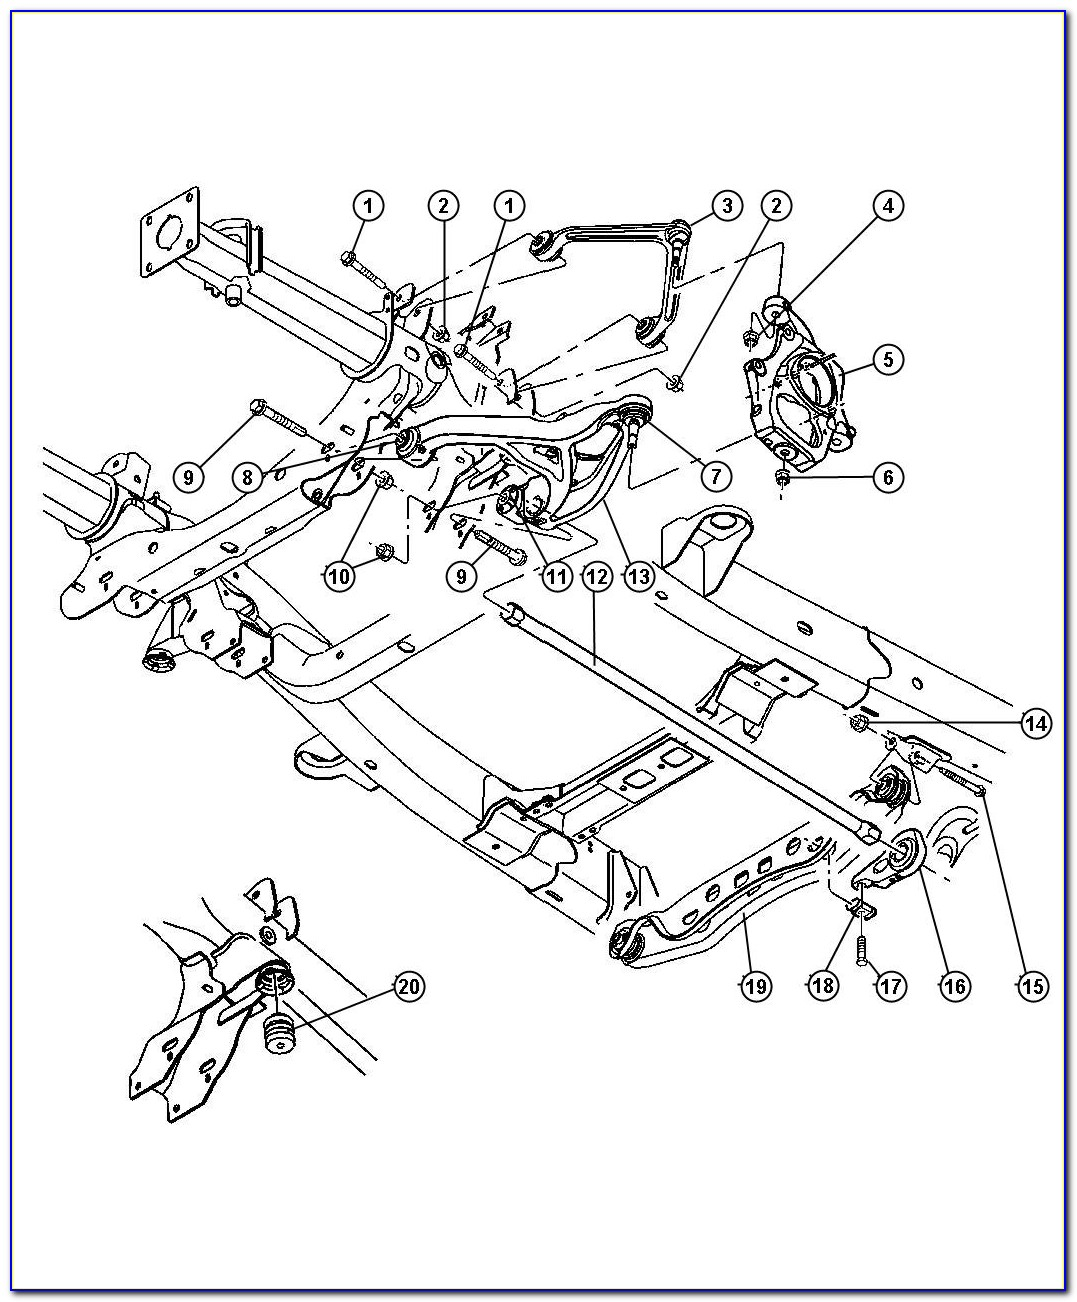 2004 Dodge Durango Rear Suspension Diagram